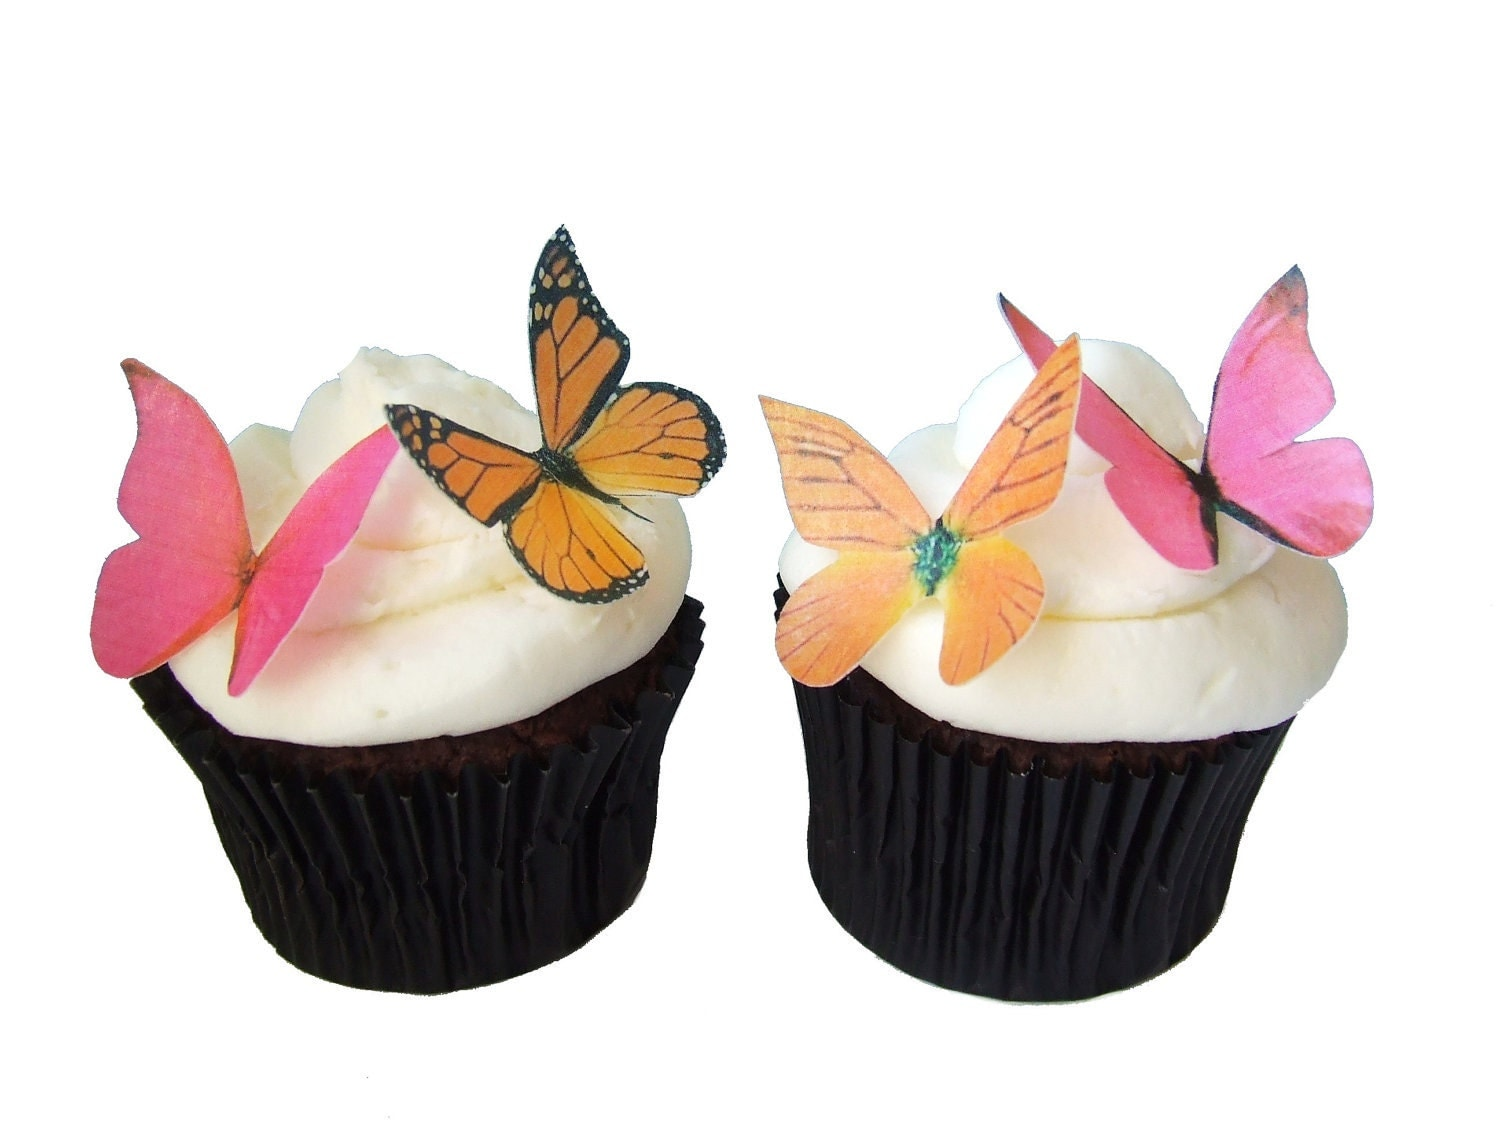 Cake Decorations Edible Photos : Edible Butterflies CAKE DECORATIONS 24 by incrEDIBLEtoppers